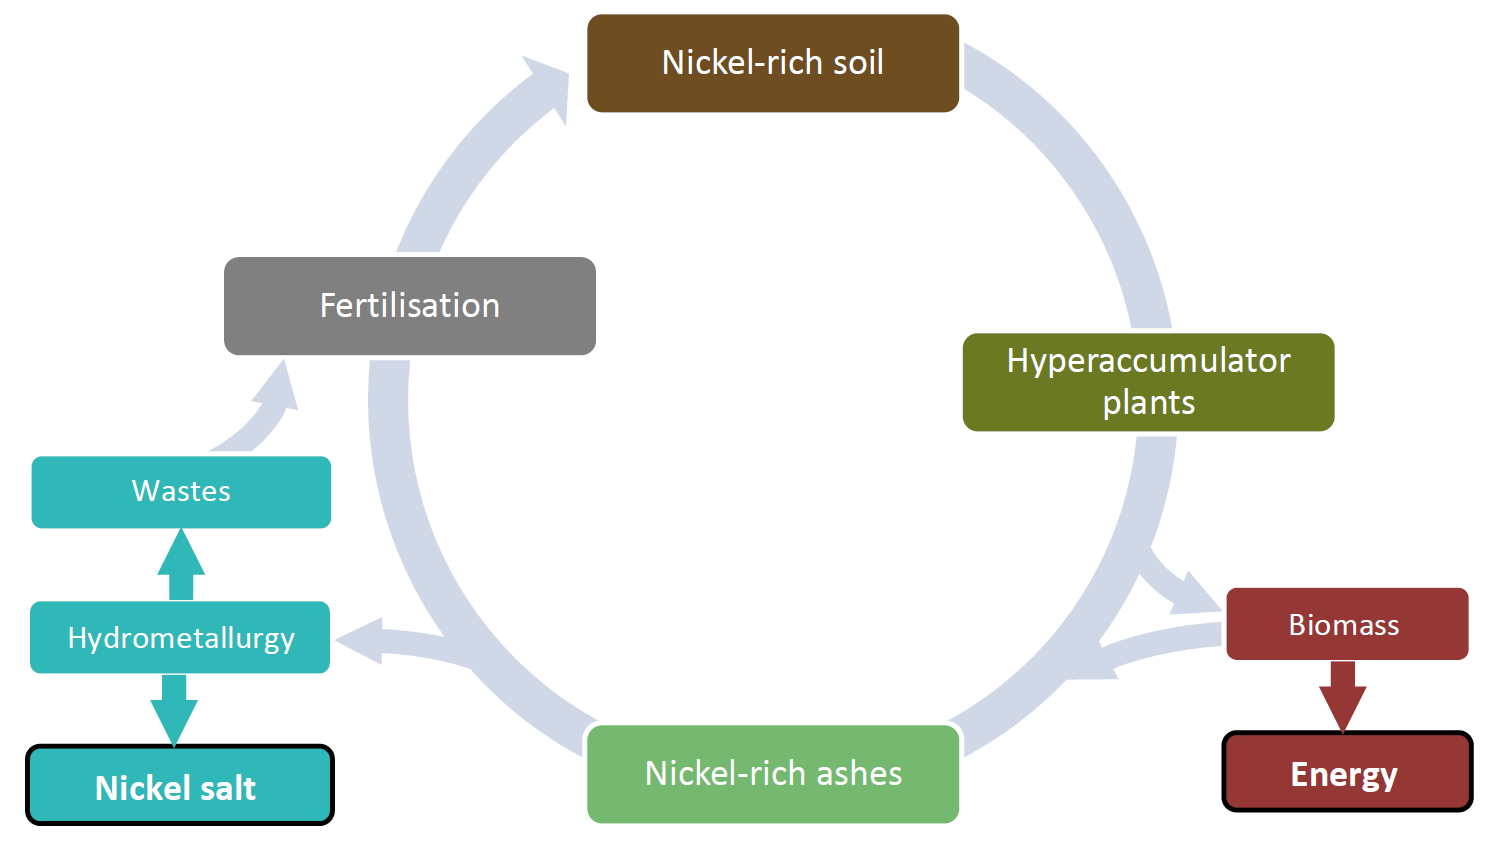 Nickel agromining cycle. Source: https://life-agromine.com/agromine/